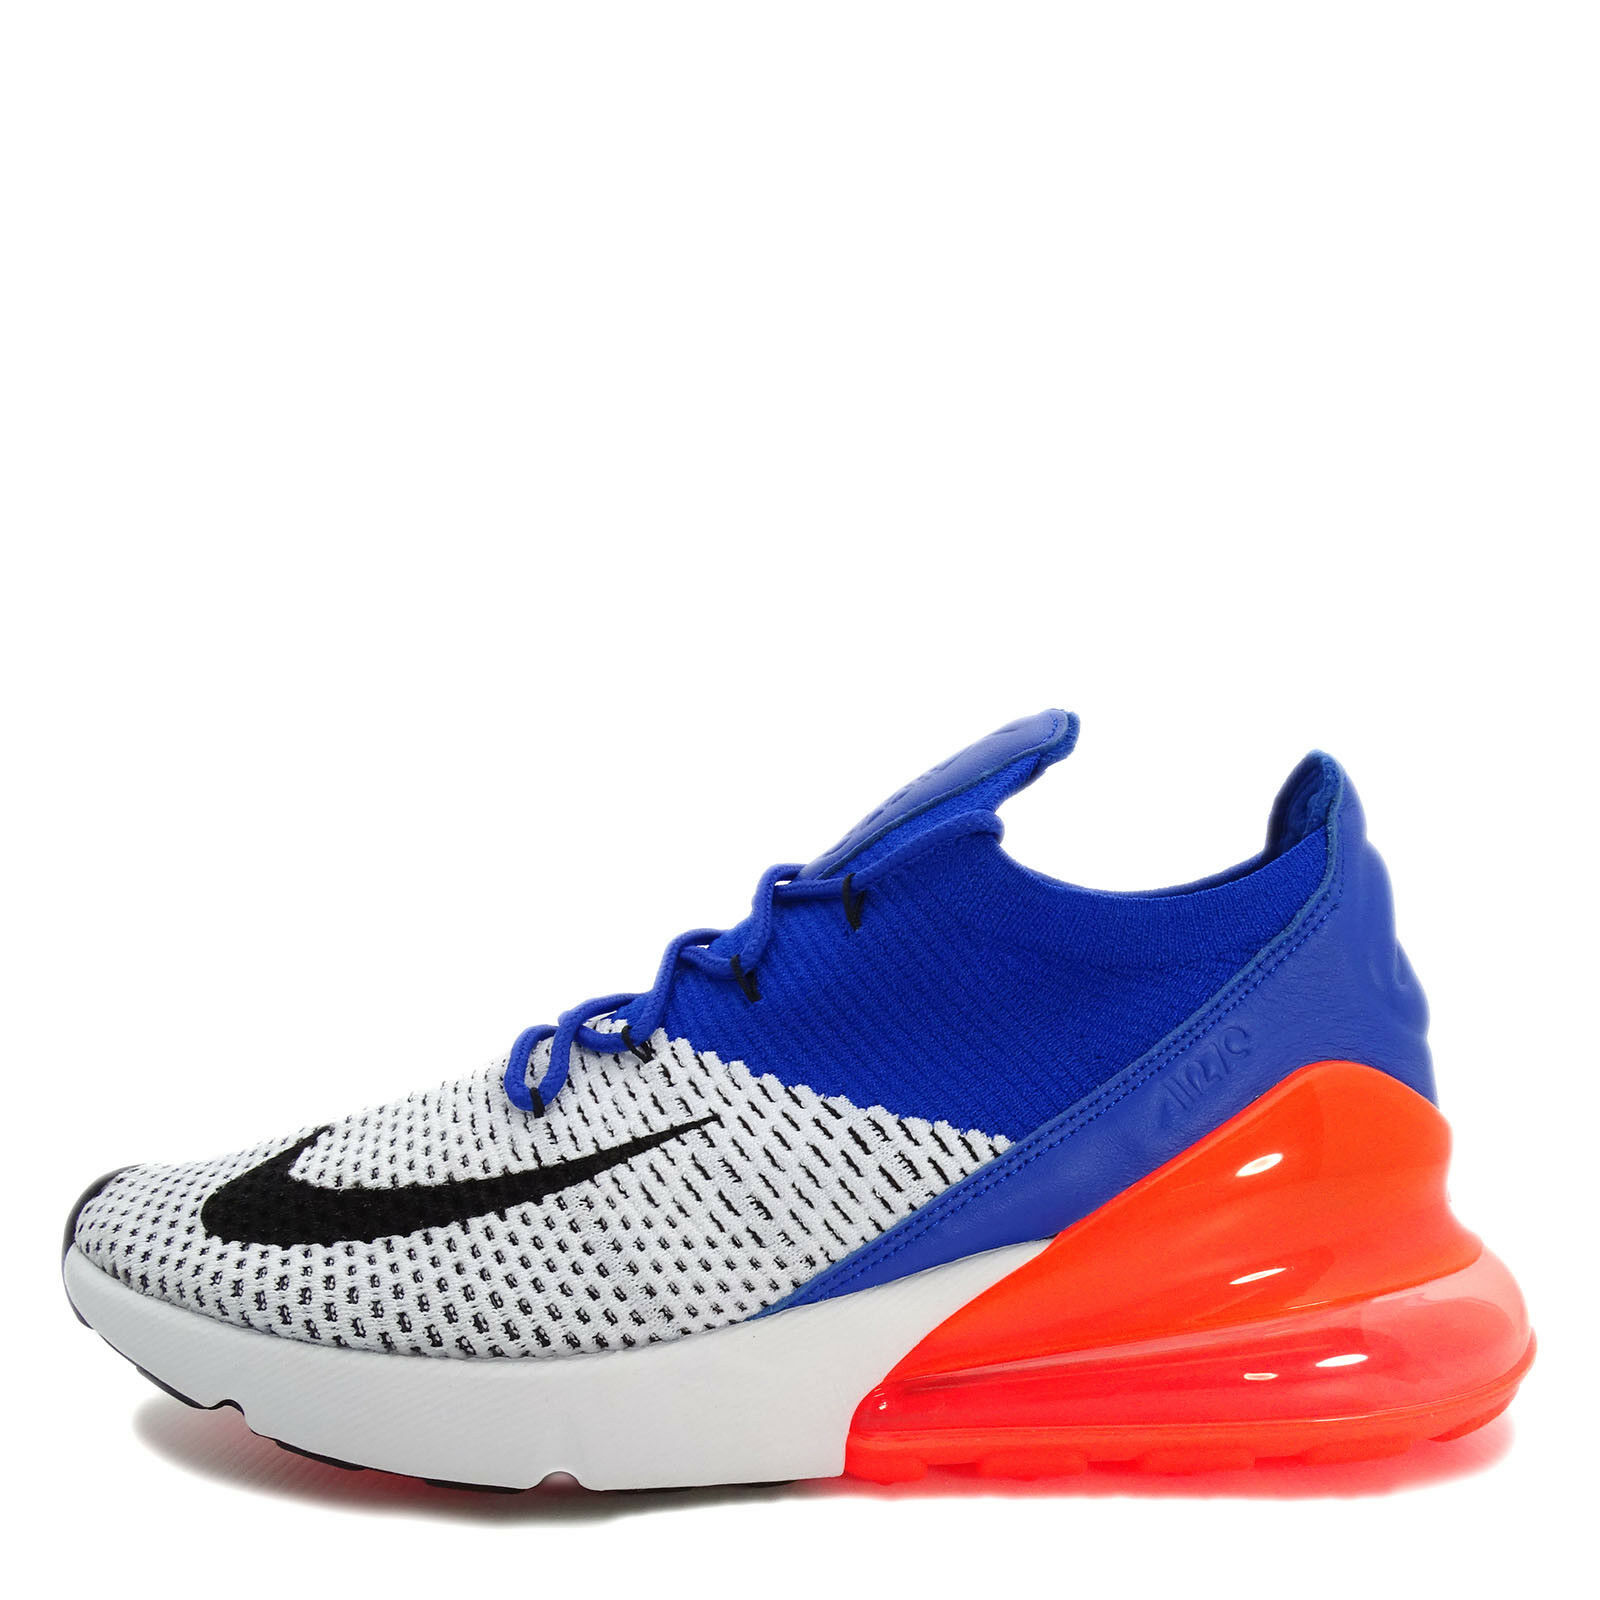 Nike Air Max 270 Flyknit [AO1023-101] Men Casual Shoes Laser White/Black-Blue